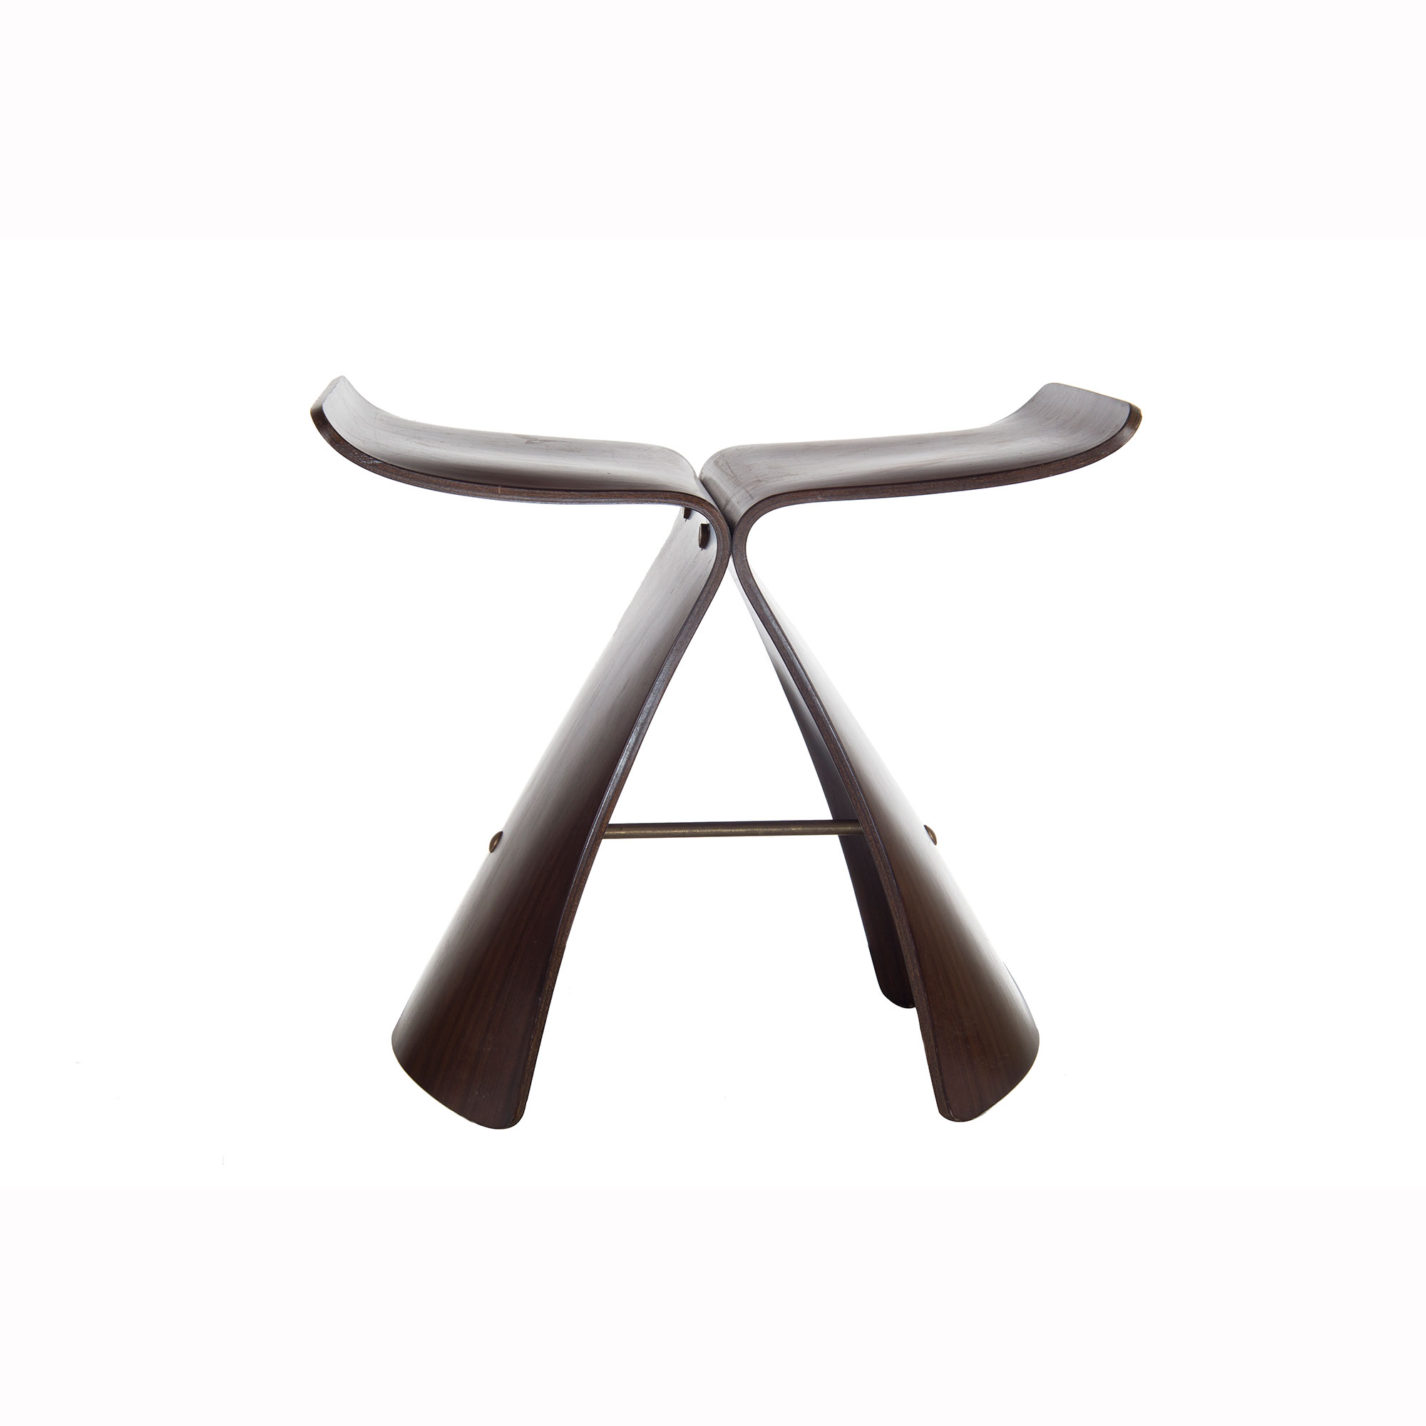 Wooden stool made of two identical pieces of bent wood connected by a slender bar in the base. Each piece of bent wood is shaped like a swooping numeral 7, with the one on the right turned backward.